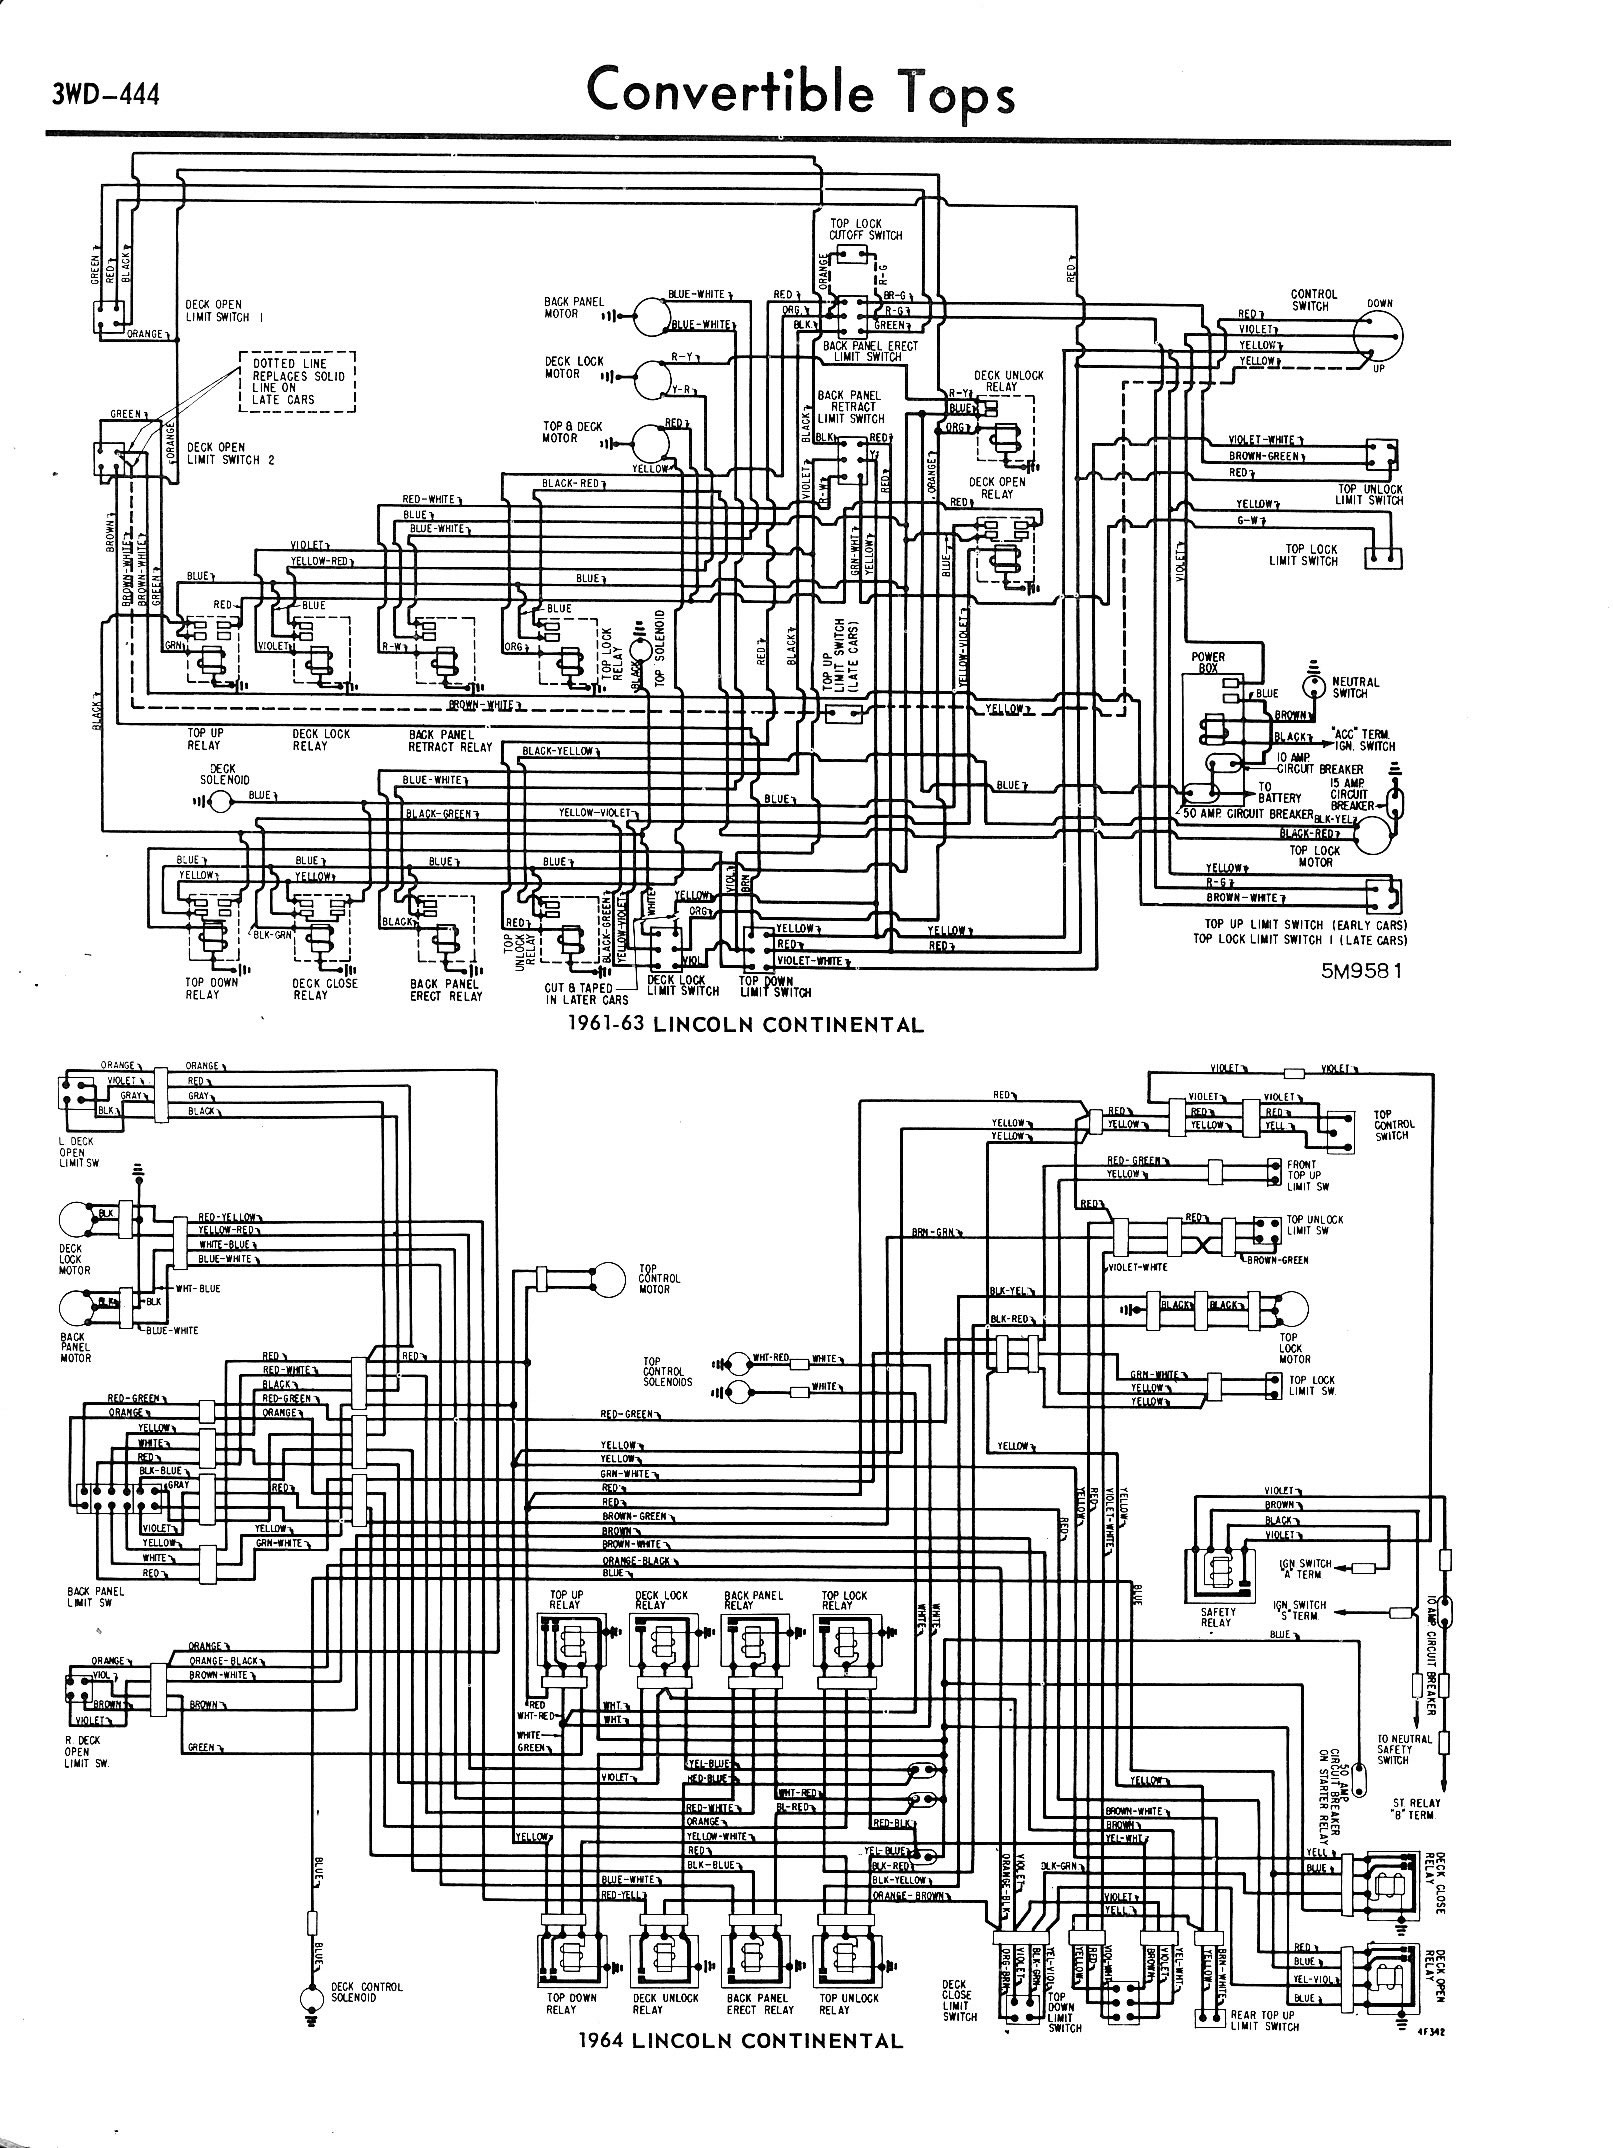 3WD 444_jpg ford diagrams 1964 ford wiring diagram at nearapp.co